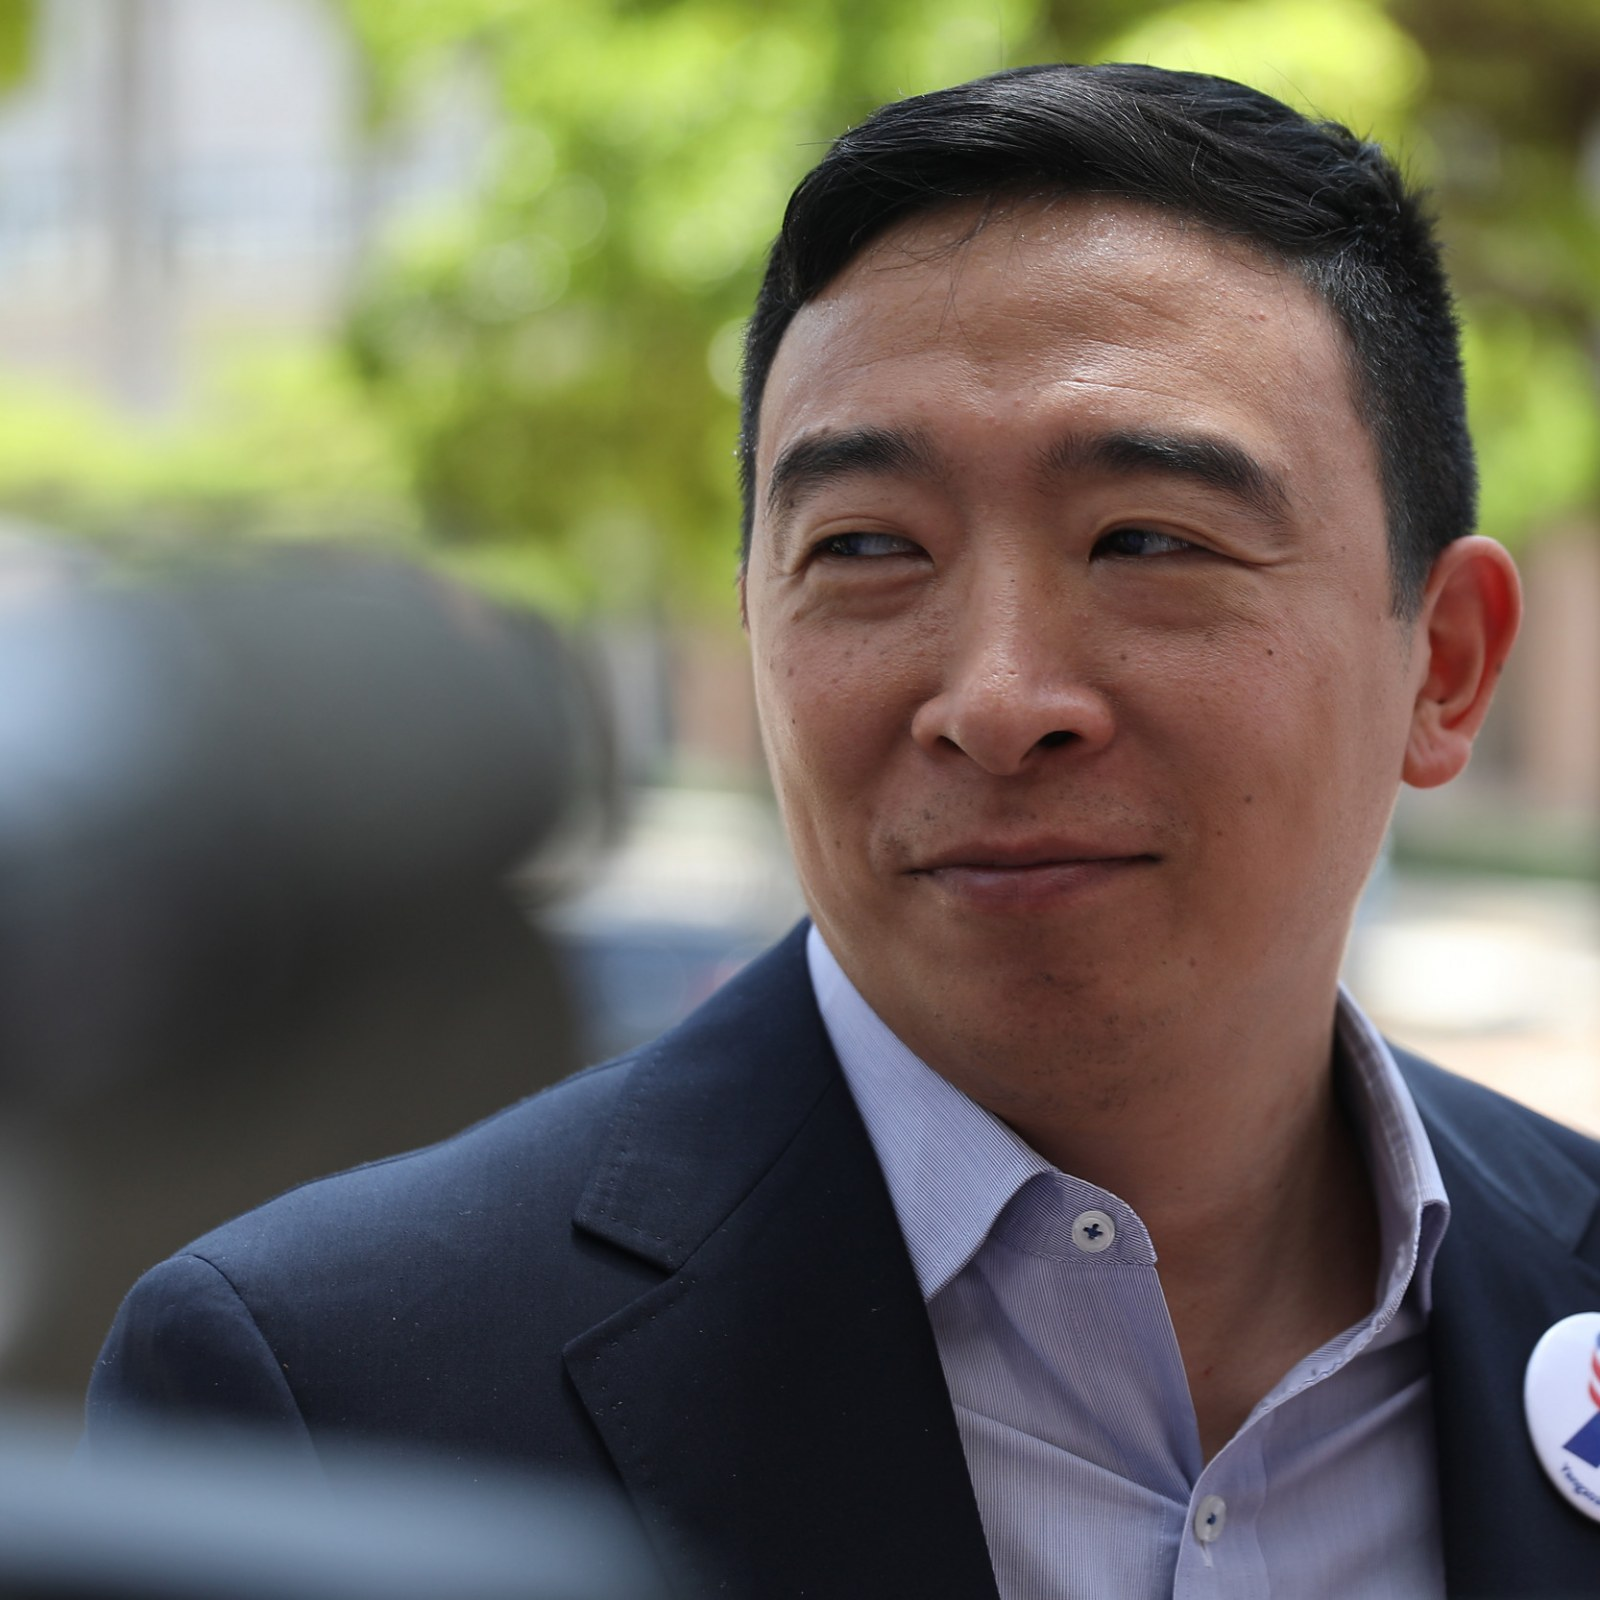 Andrew Kwong who is andrew yang? 'asian man standing next to joe biden